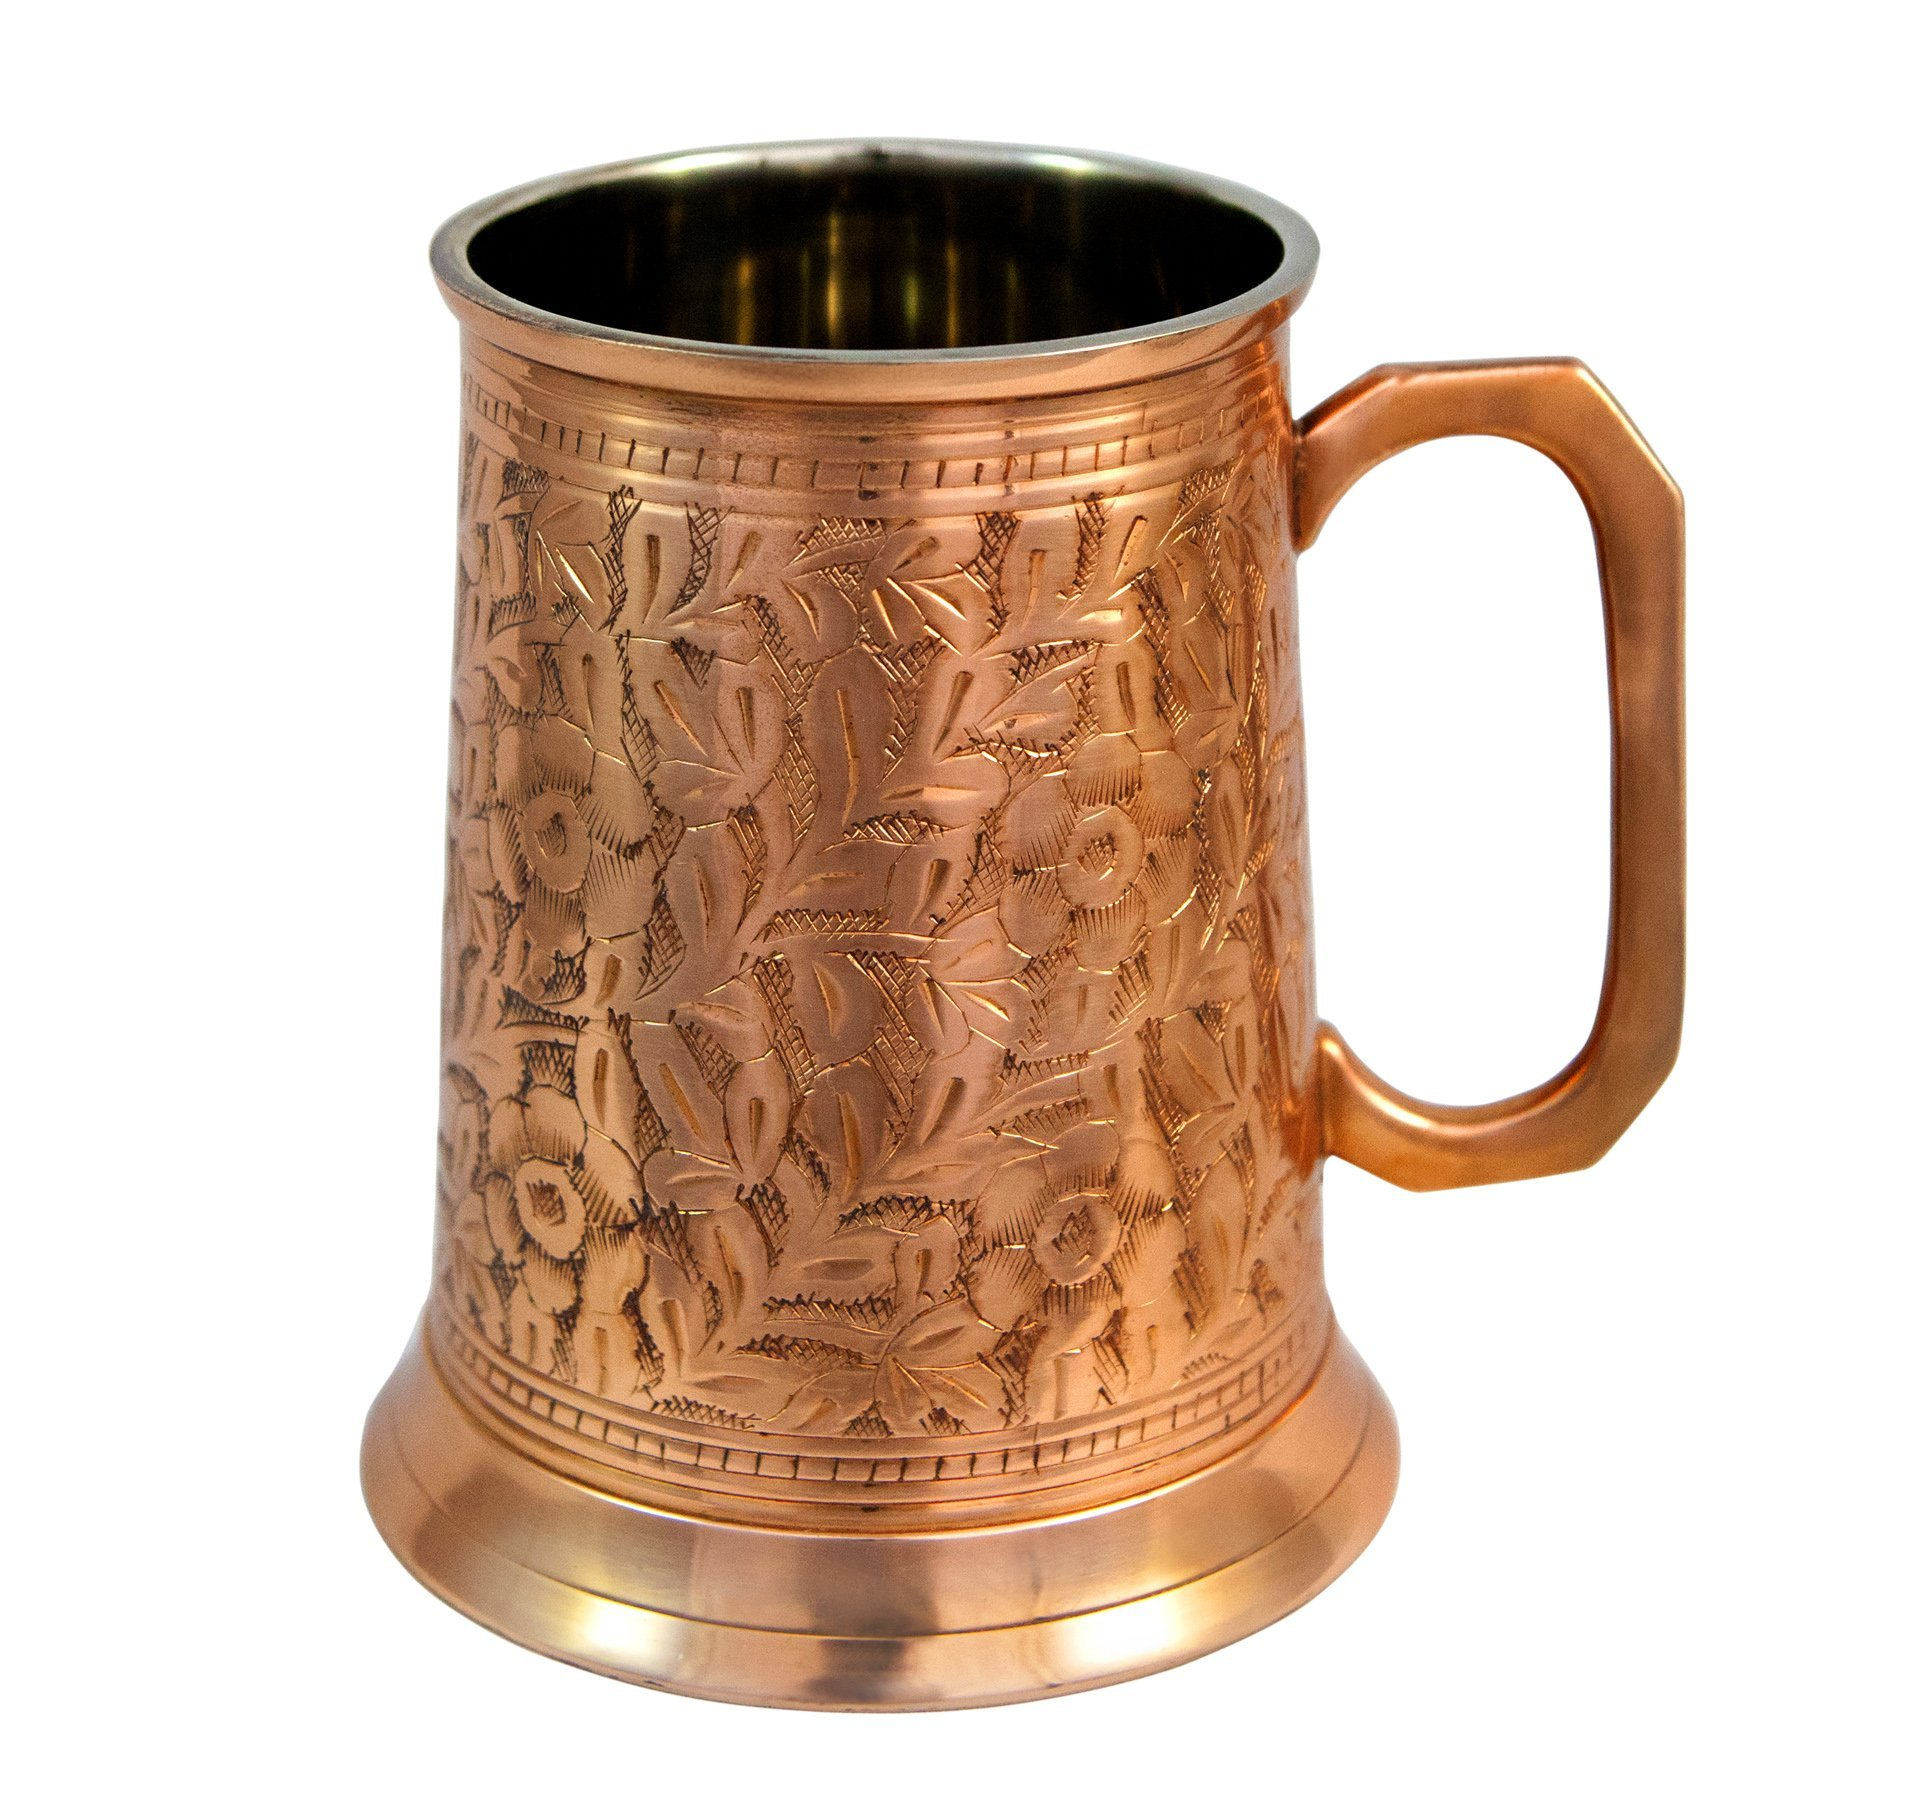 Copper German Beer Stein - Handcrafted Copper Antique Large Beer Stein Mug, Best Copper Tankard Mug Gift For Beer Or Moscow Mule Lover - Capacity 20 OZ by Alchemade